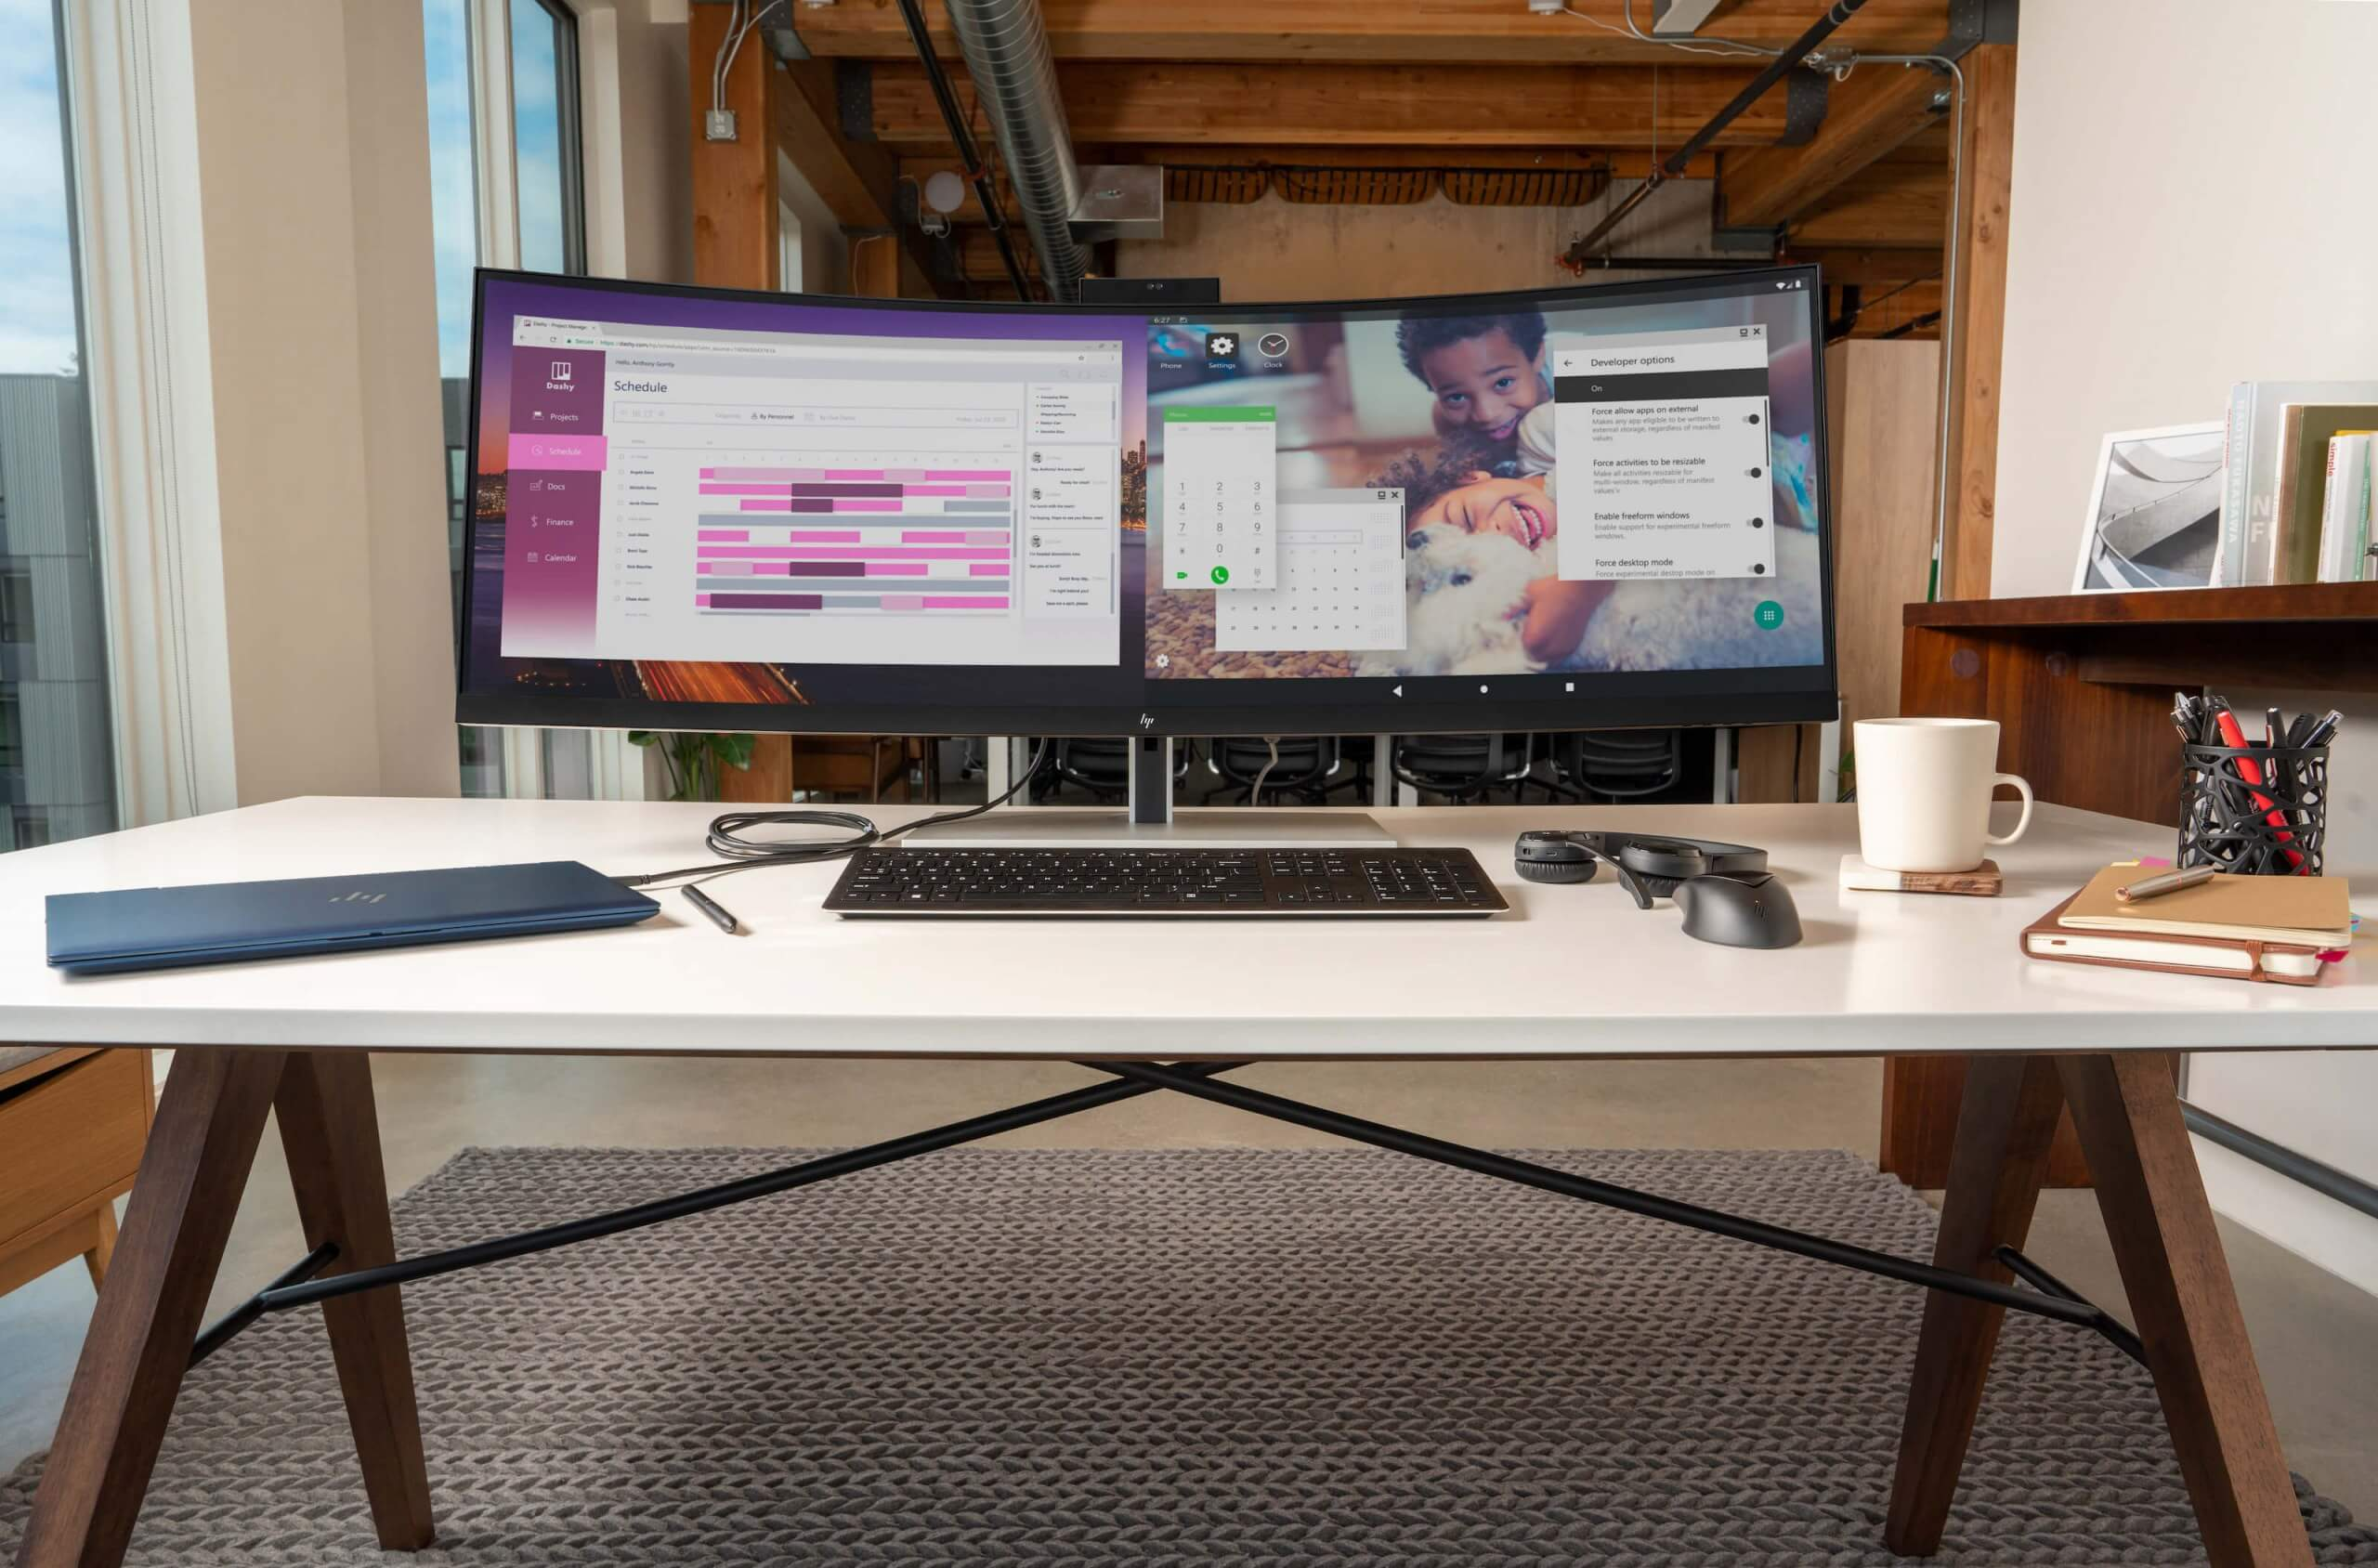 HP's new 43.4-inch ultrawide monitor can replace your dual-display setup